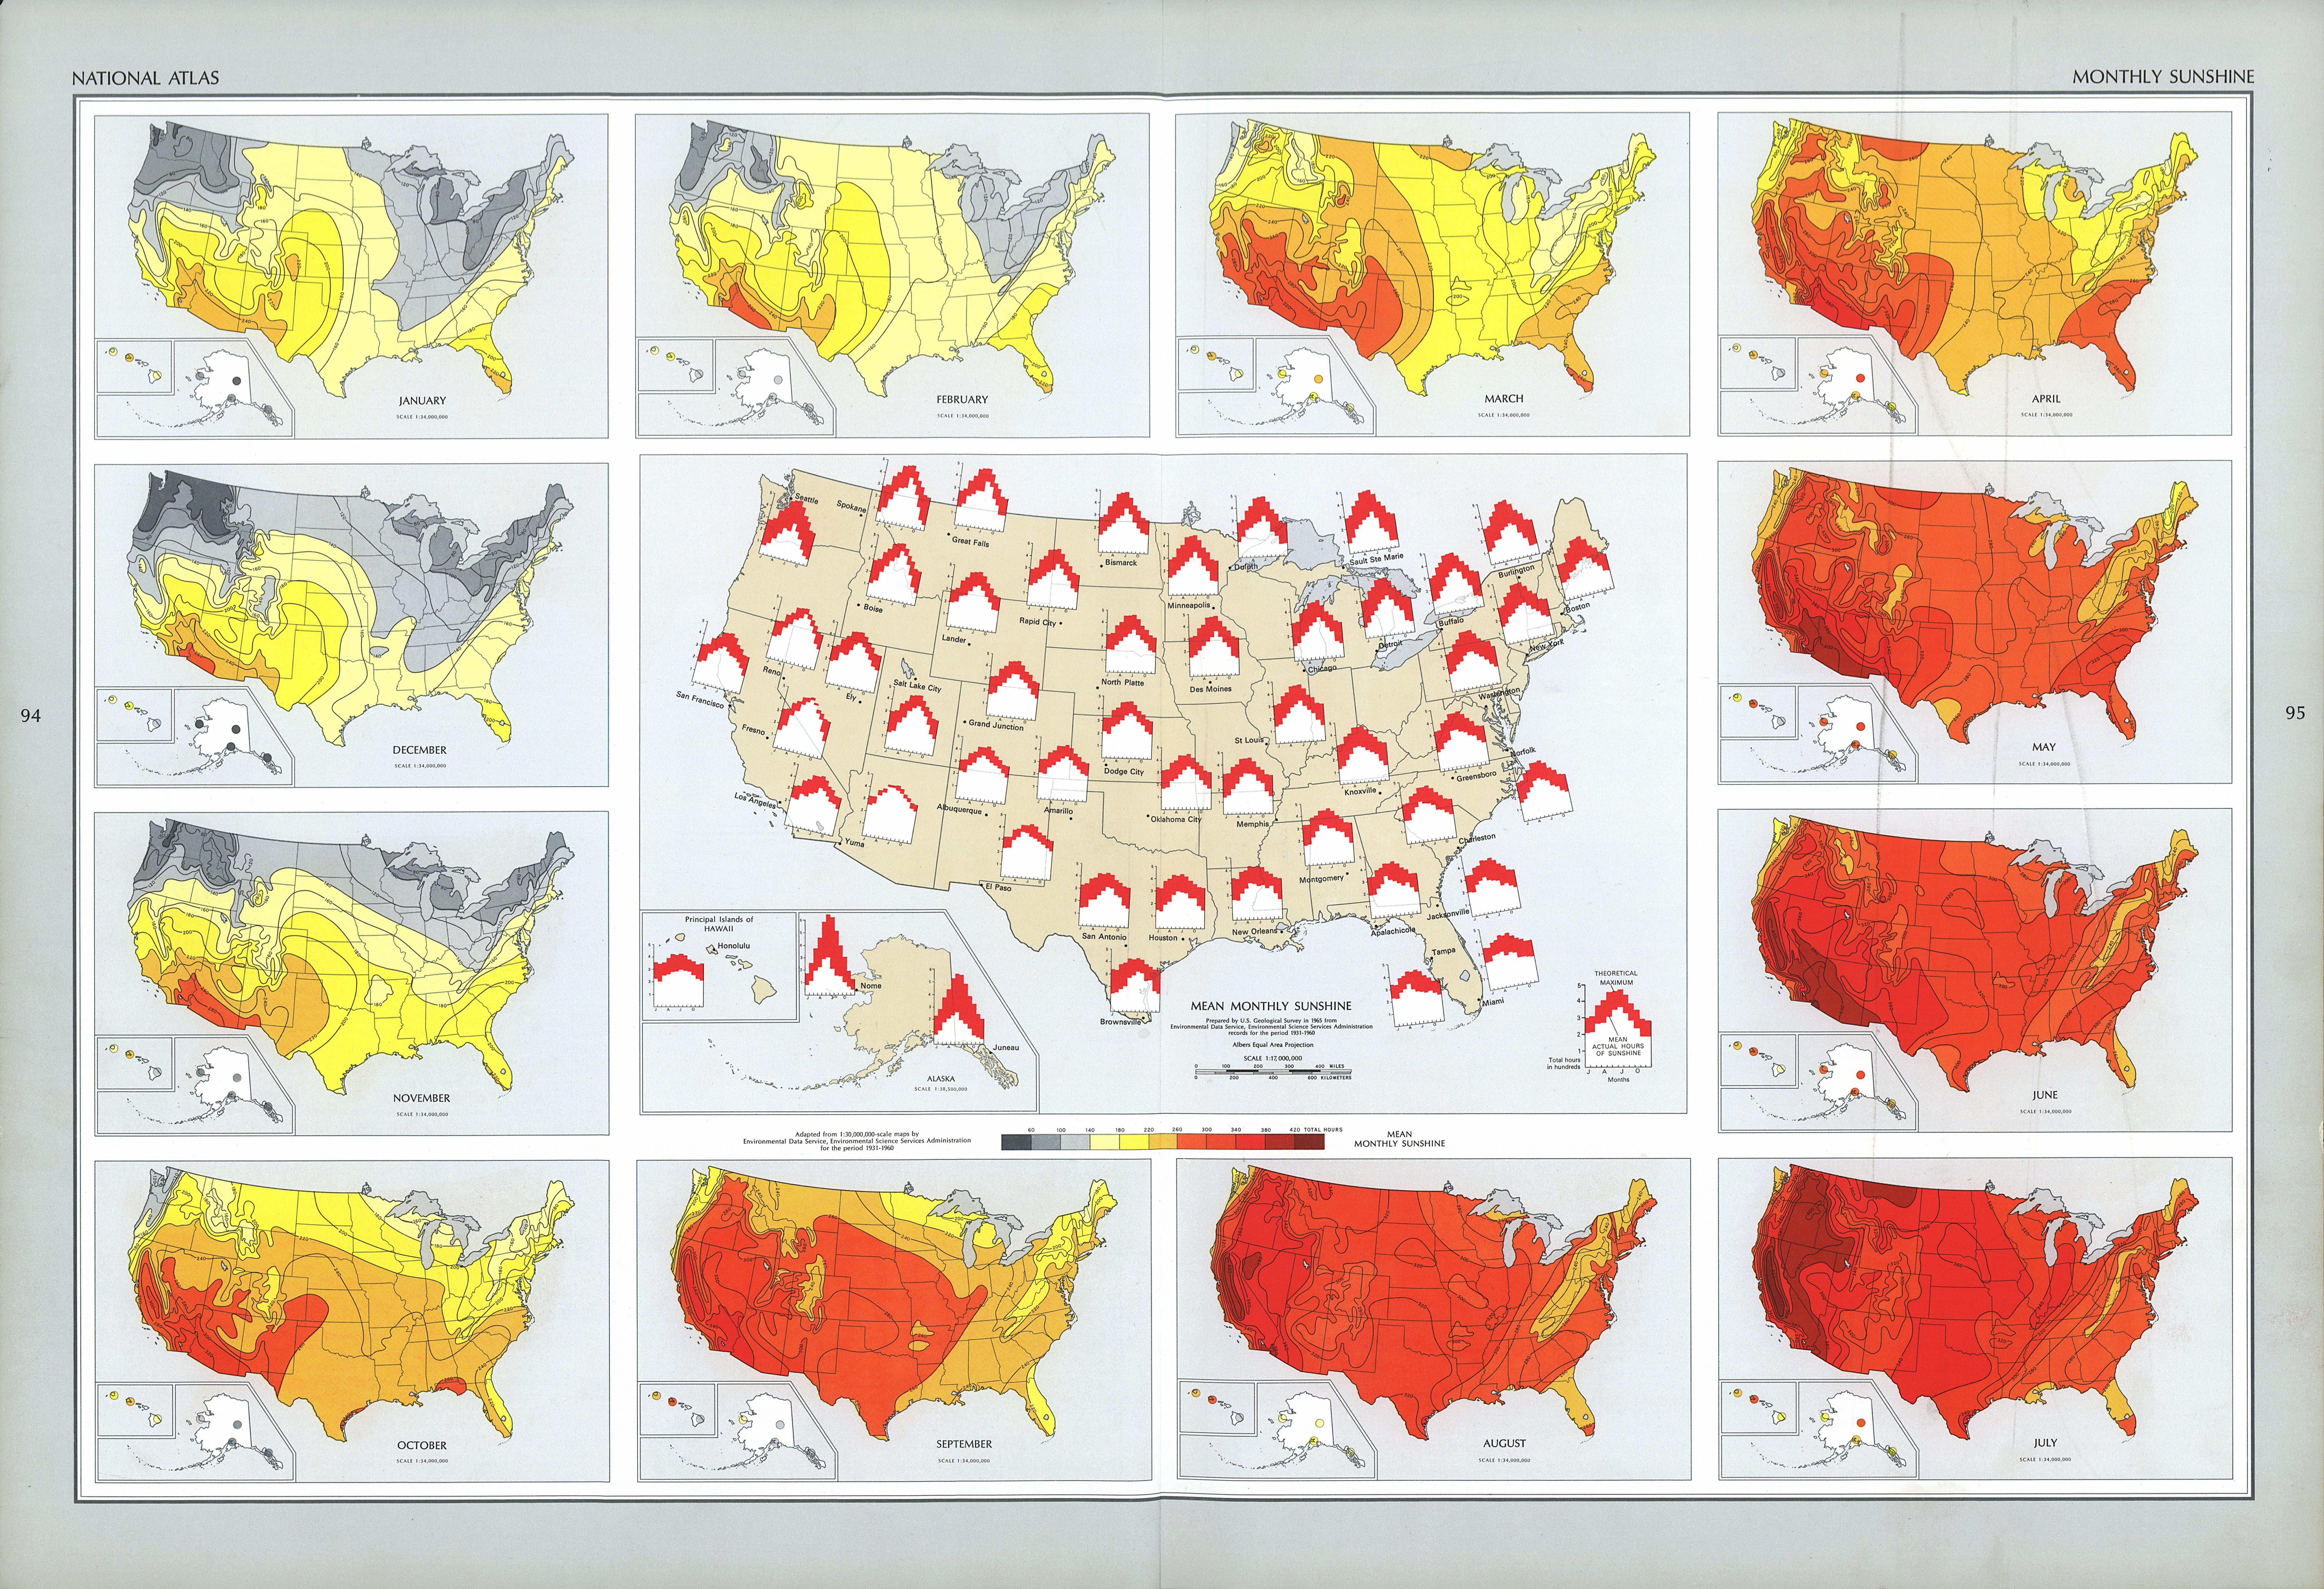 United States Monthly Sunshine Map